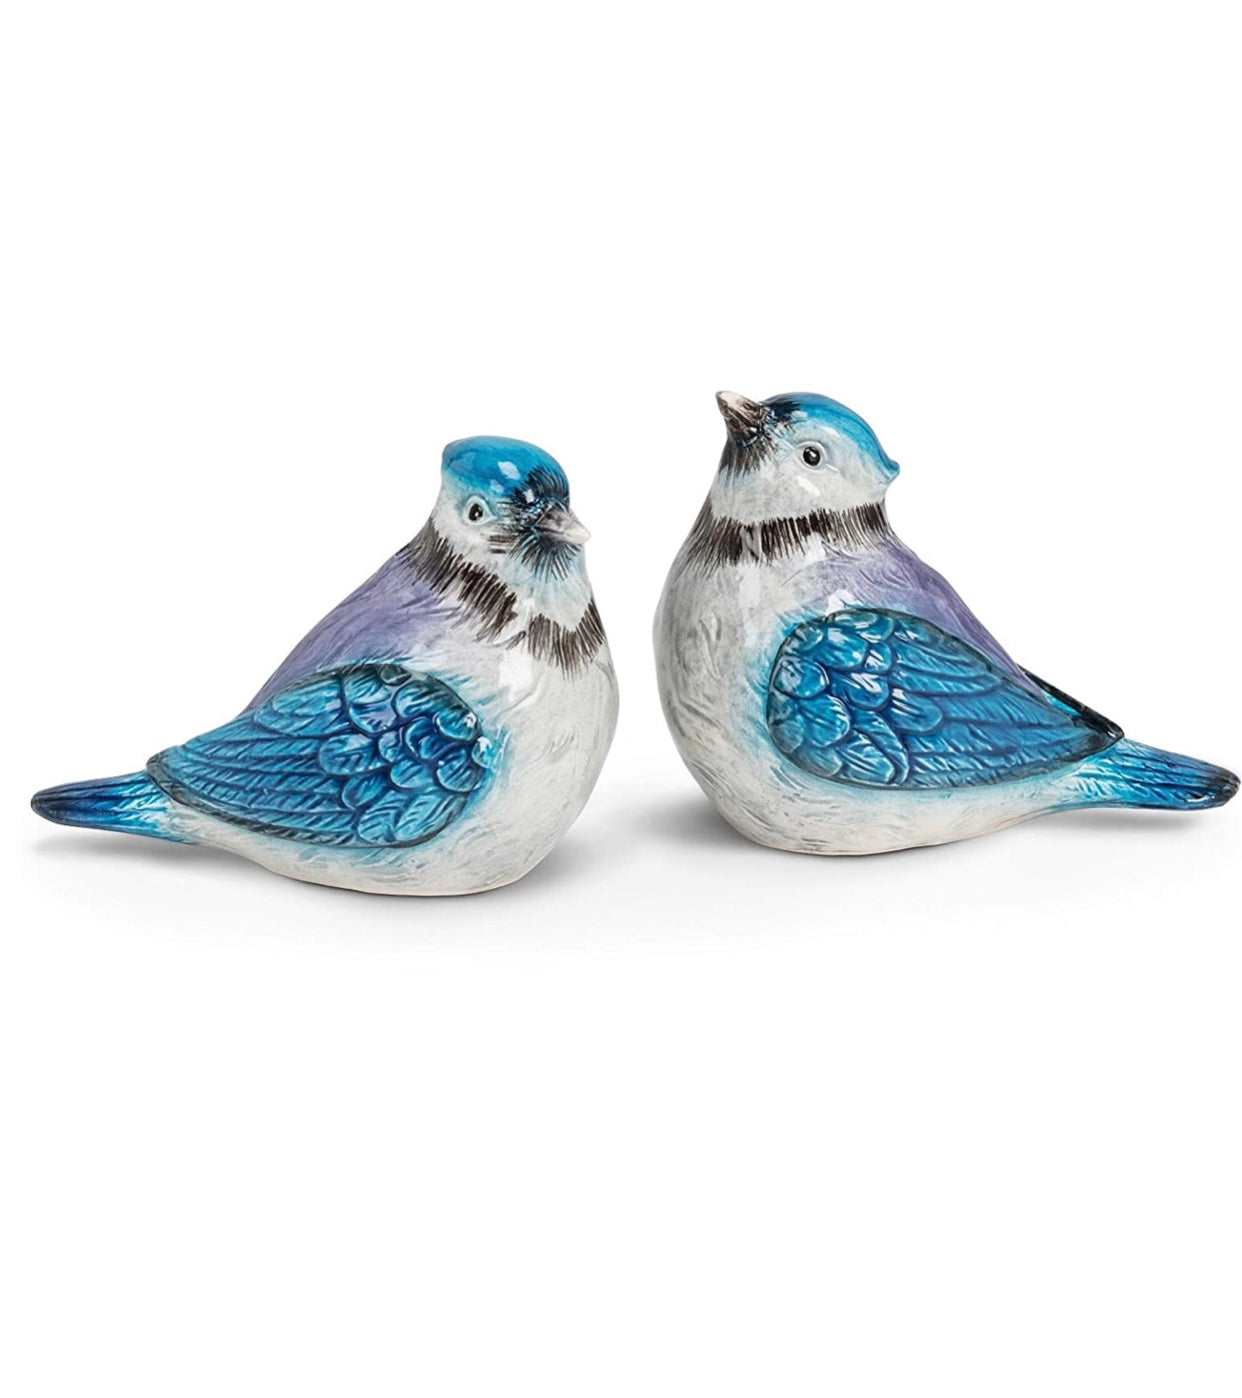 Salt & Pepper Shaker Blue Jay